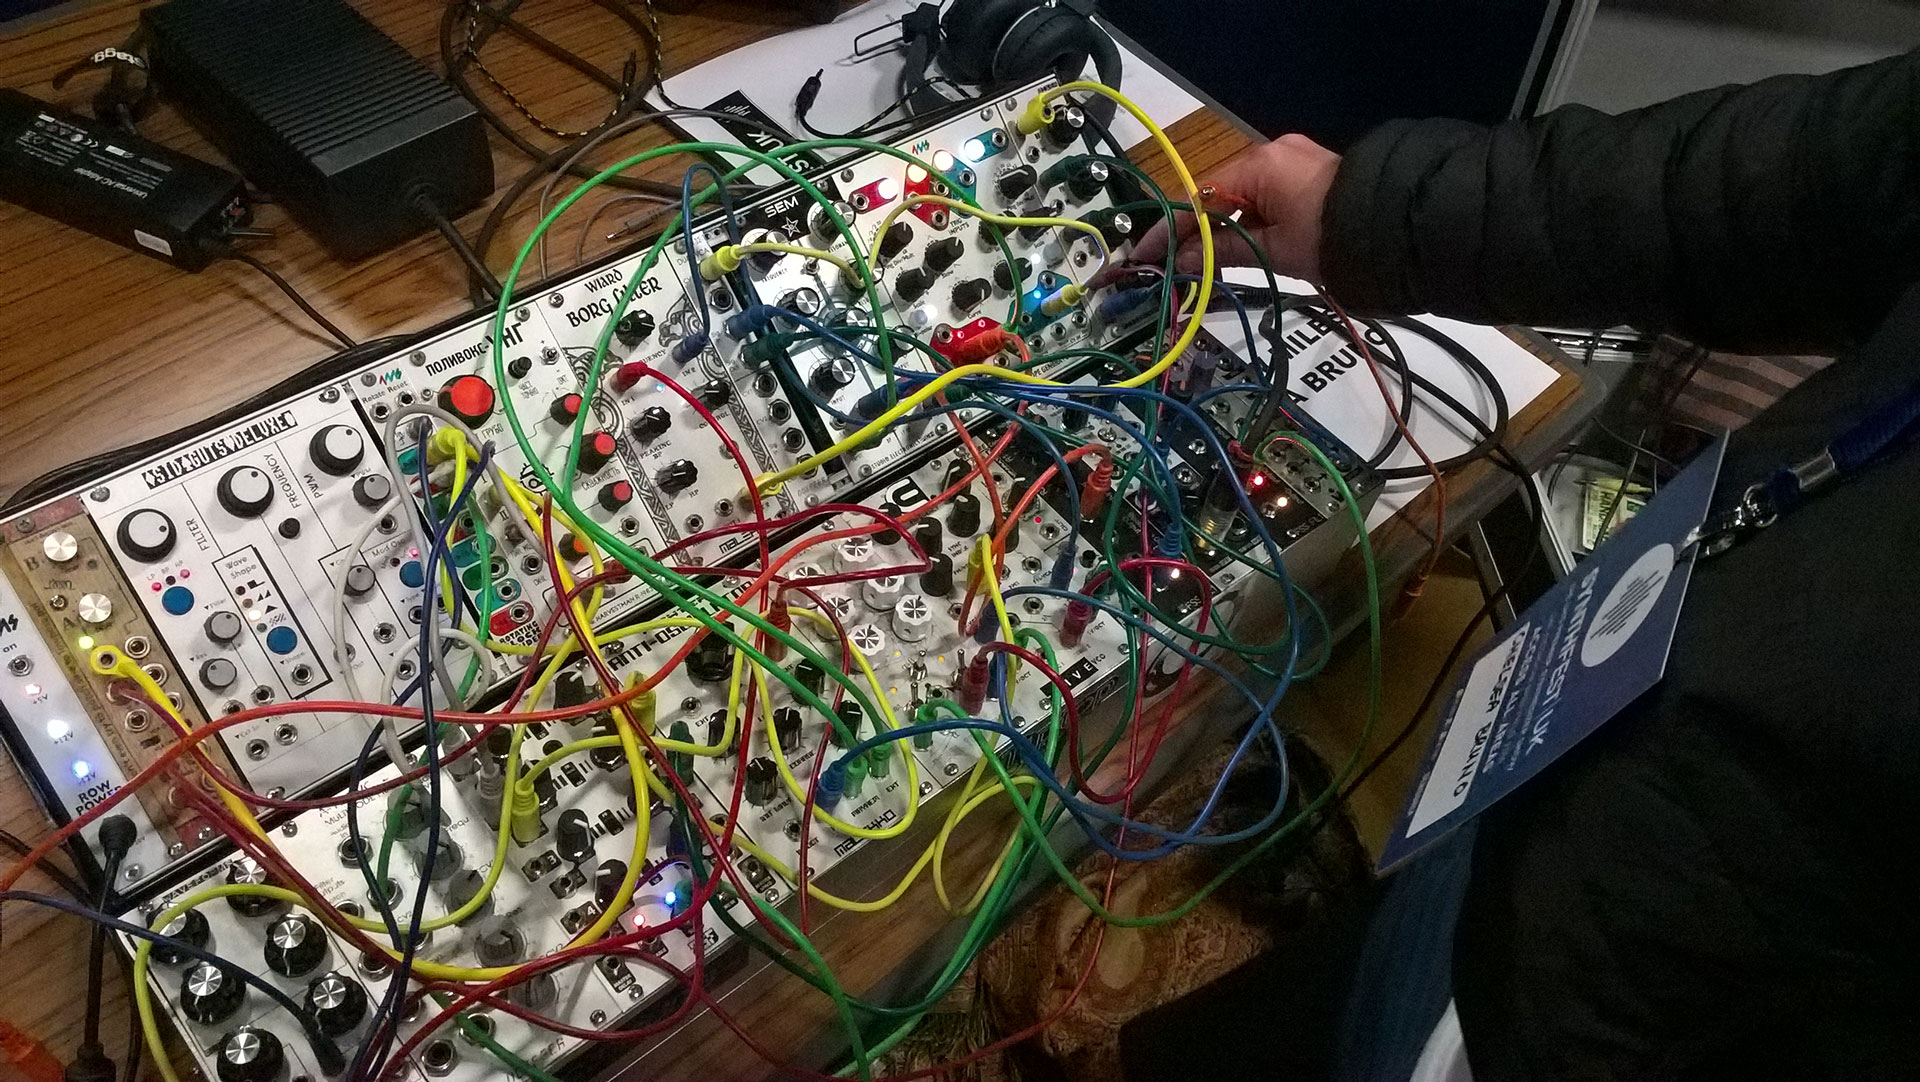 A journey into Modular Synthesis - Molten Modular